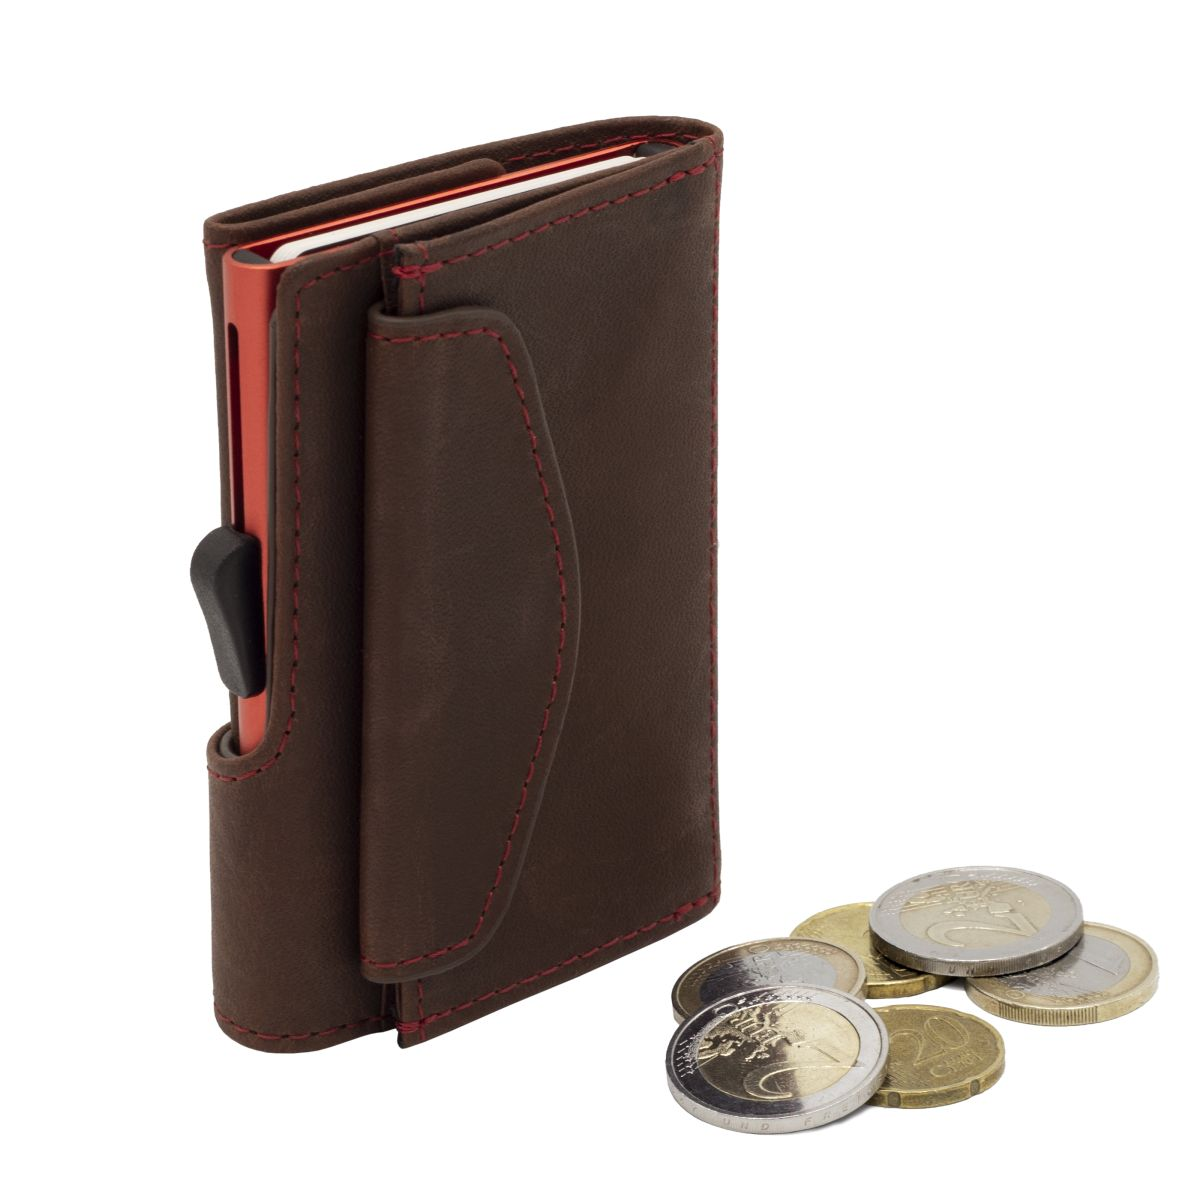 Aluminum Card Holder with Genuine Leather and Coin Pouch - Auburn Brown